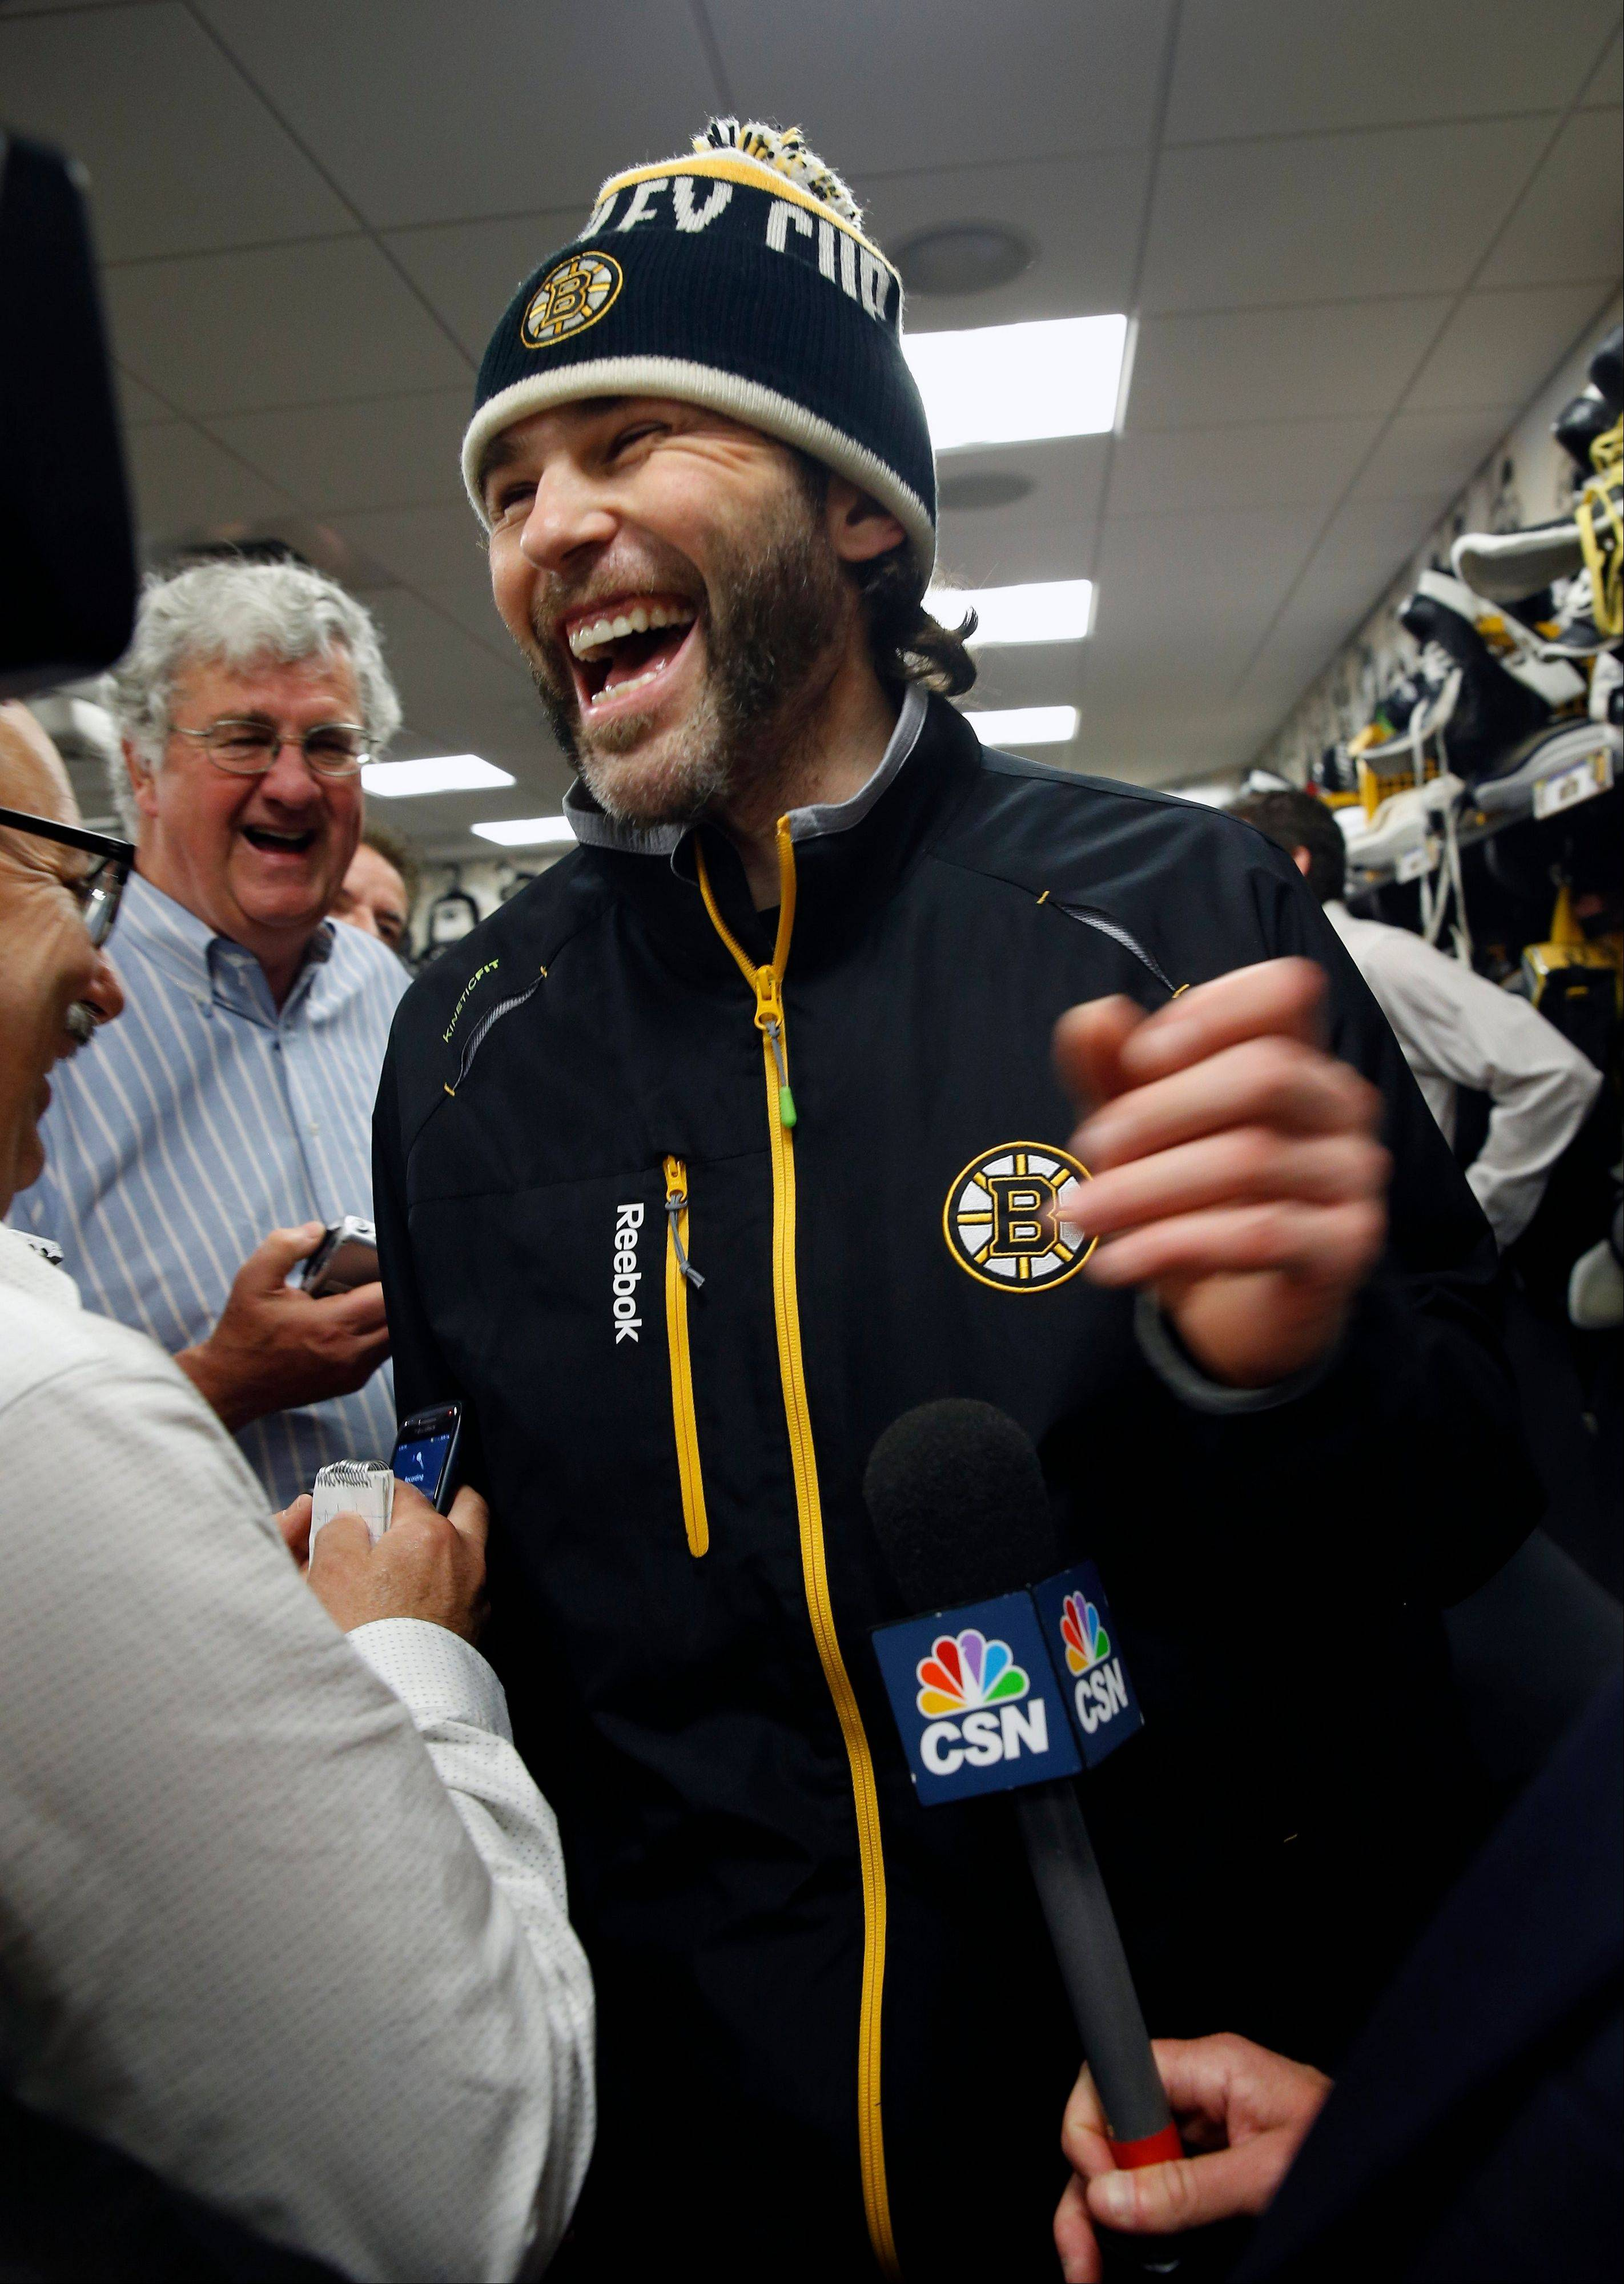 Twenty-one years ago, Jaromir Jagr won the Stanley Cup Finals against the Blackhawks. The 41-year-old has bought into Pittsburgh's defensive philosophy and has been a productive player for the Eastern Conference champs.